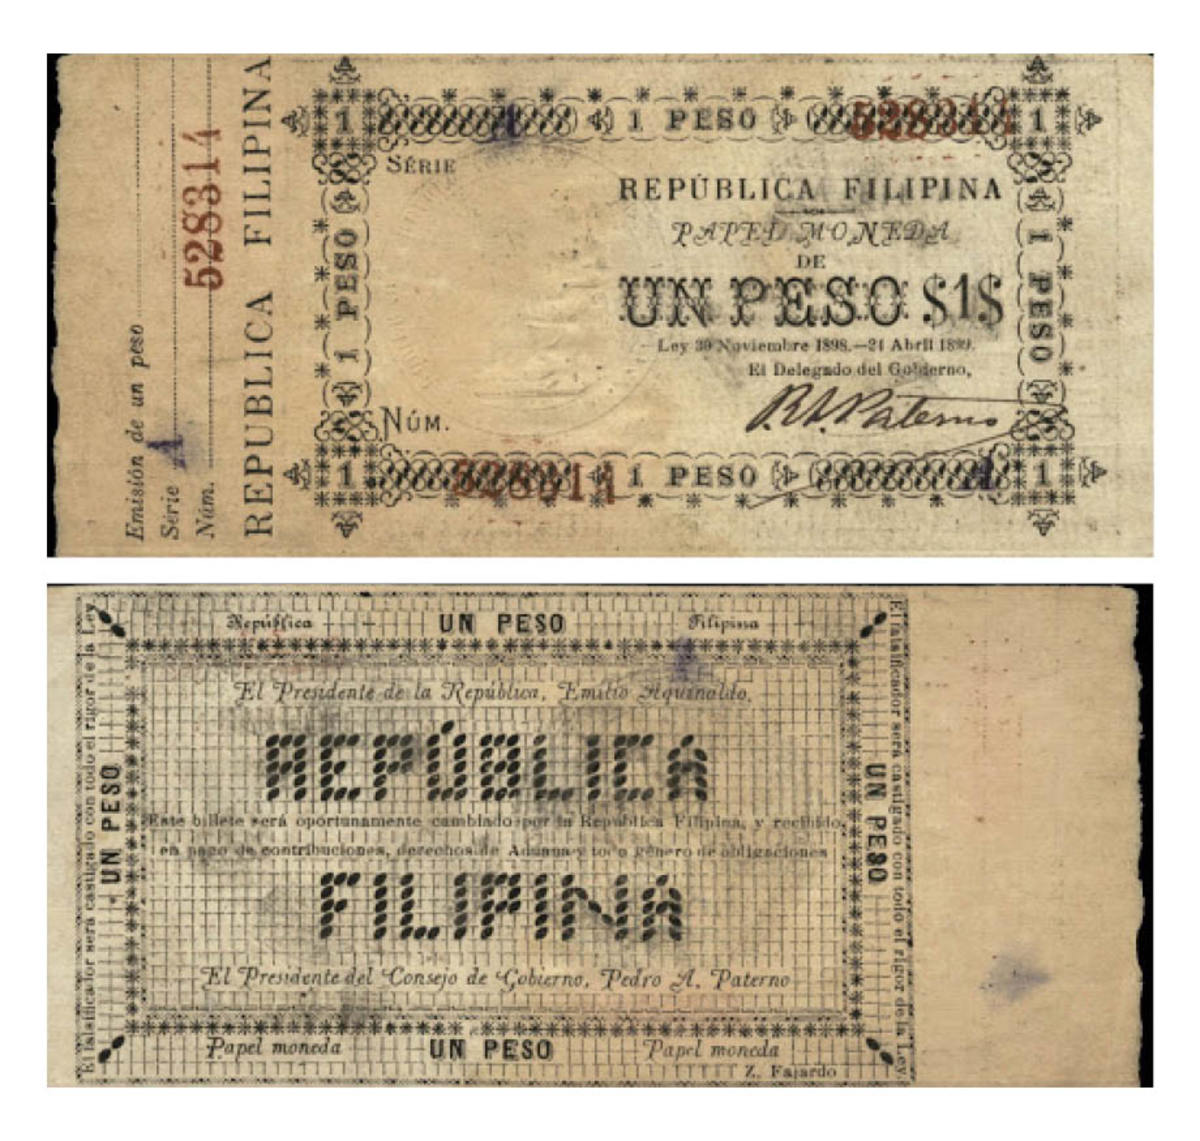 Face and back of extremely rare, high-grade issued, Republica Filipina 1 peso hand signed and with serial number c. 1898-1899 (P-A26a). In PMG AU 53 it sold above its estimate with $14,400. (Image courtesy Lyn Knight Auctions)